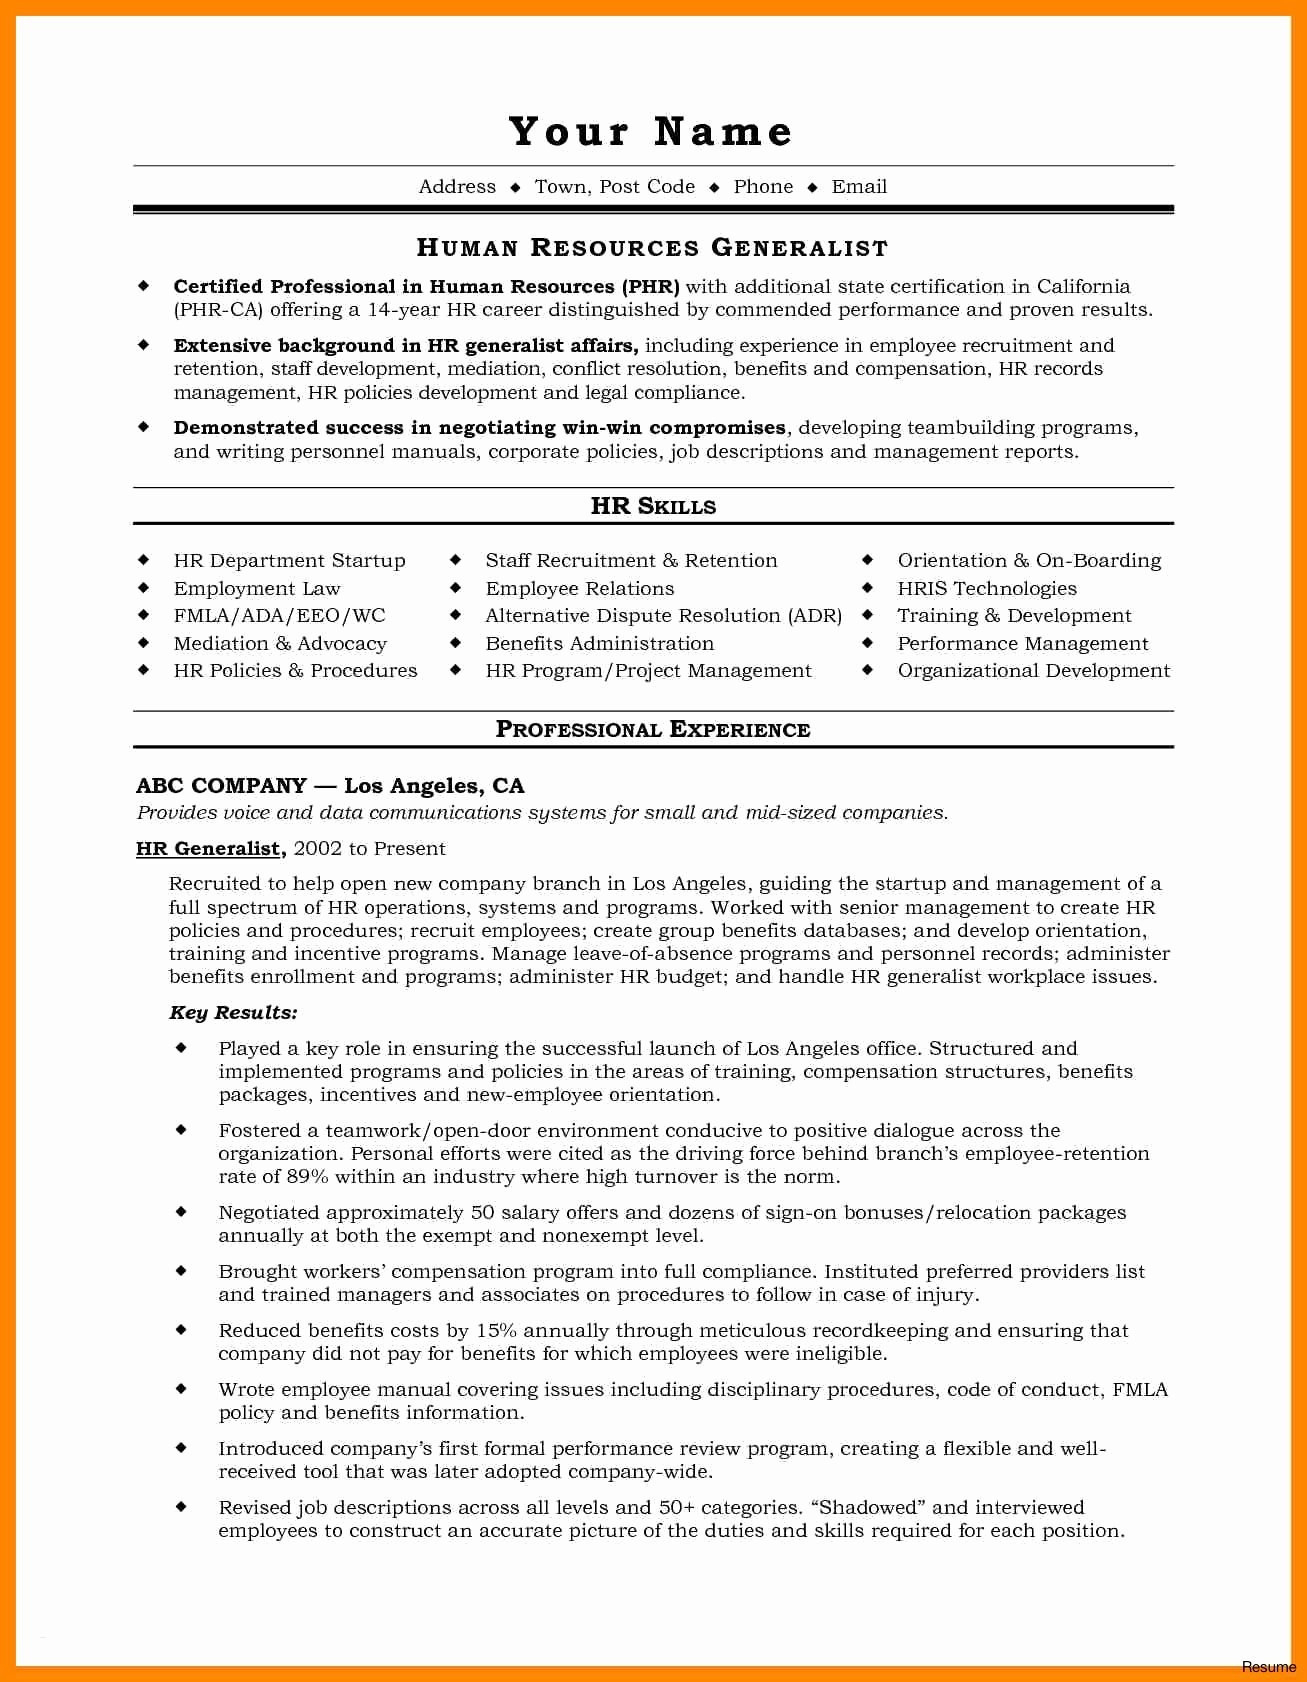 Law Firm Resume - Example A Professional Resume for A Job Free Downloads Resume for